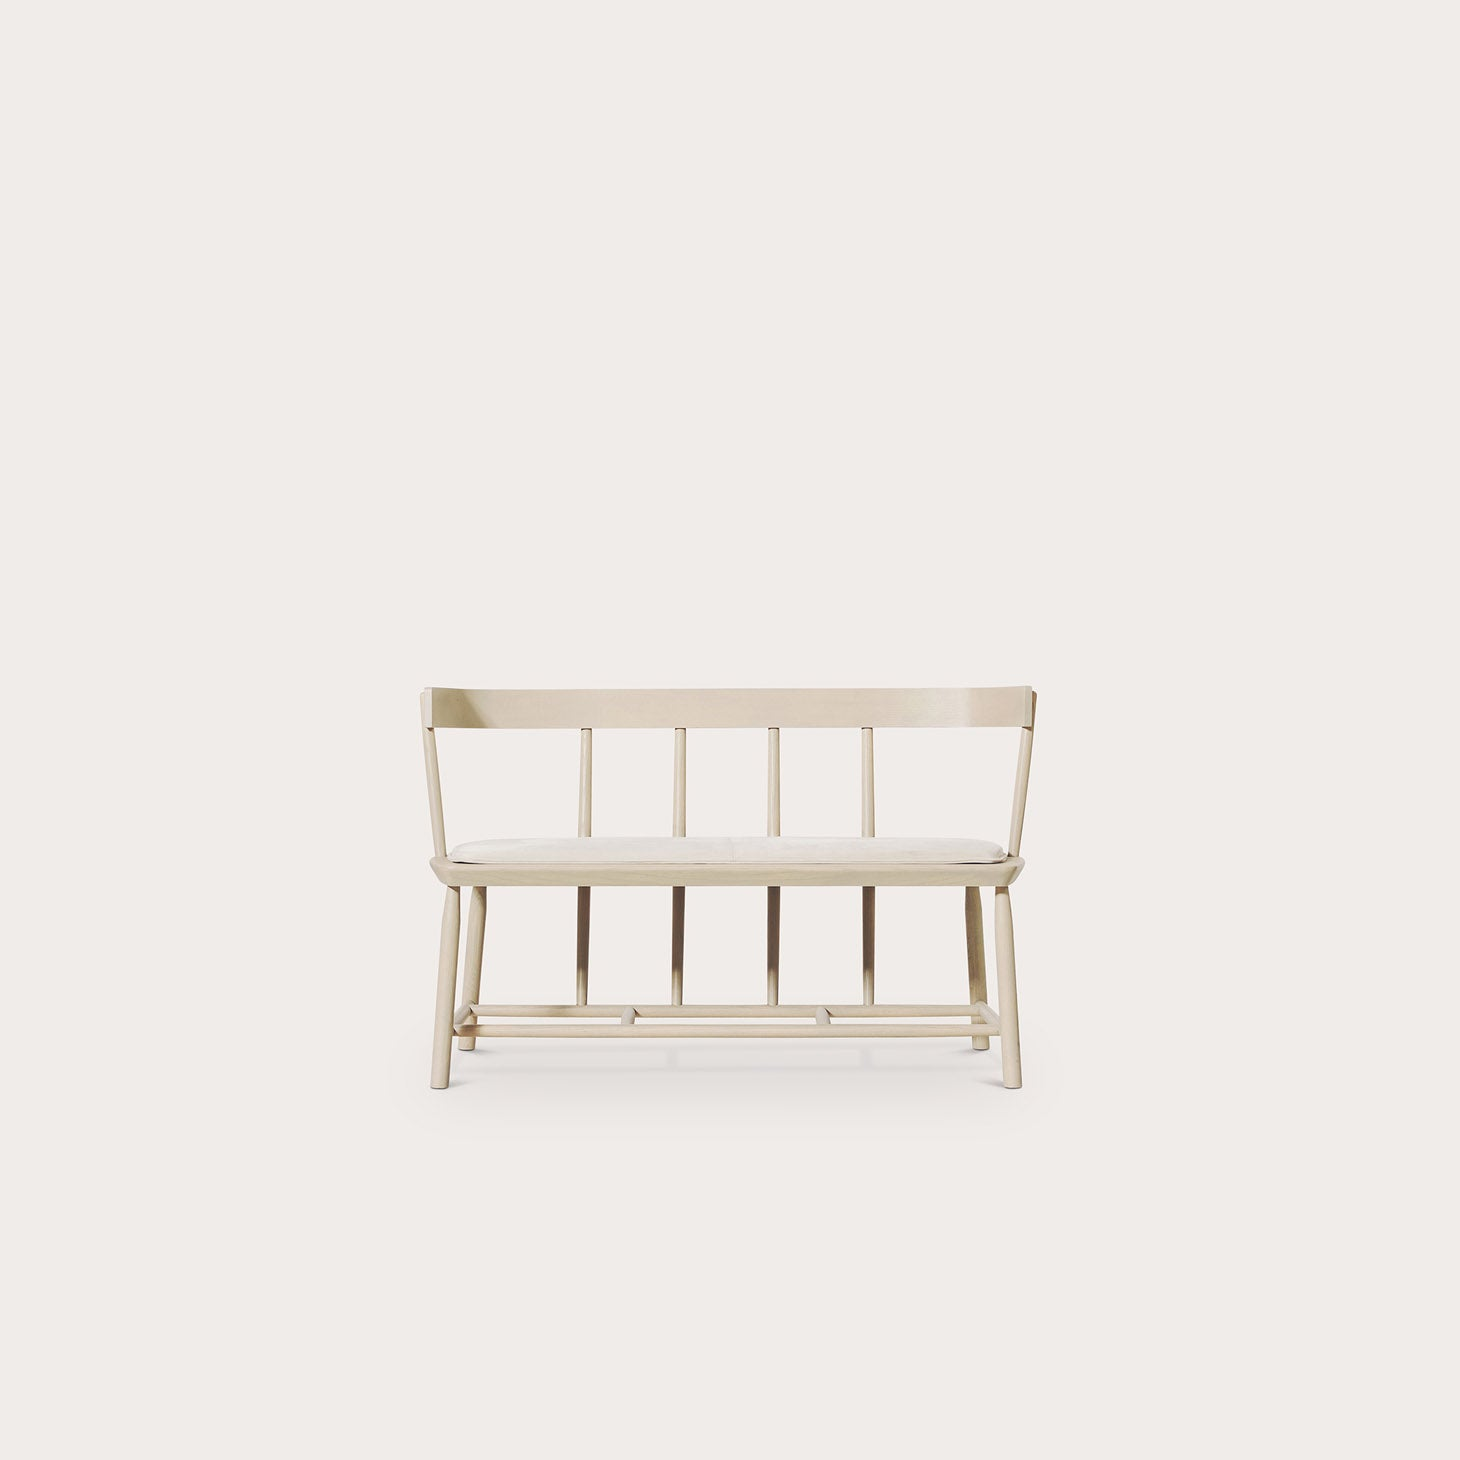 Oiseau Seating Yabu Pushelberg Designer Furniture Sku: 247-300-10000